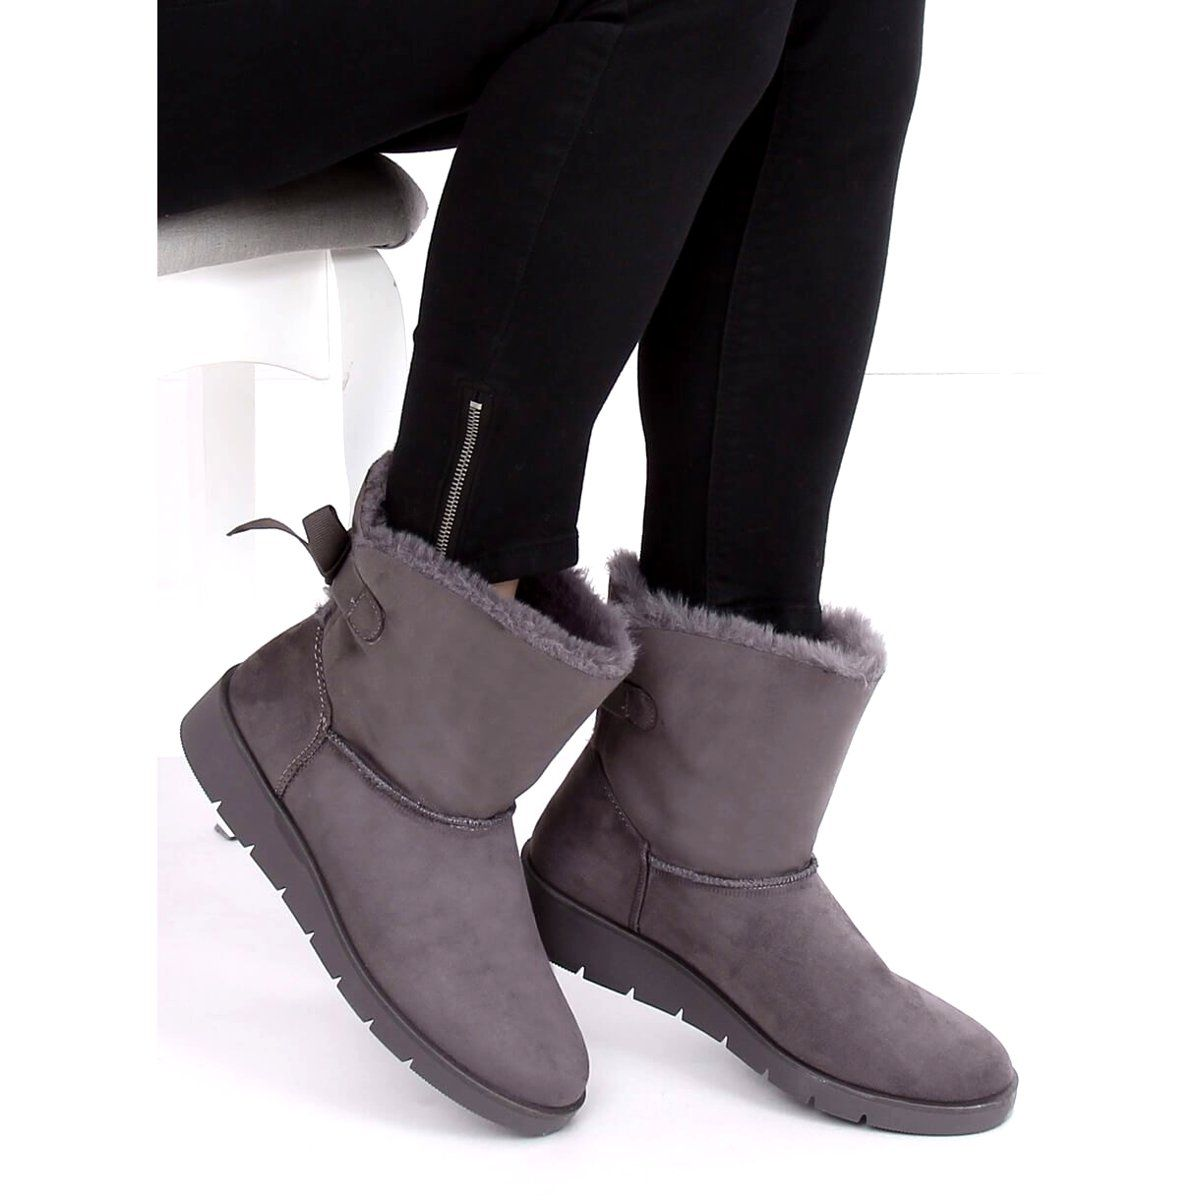 Sniegowce Damskie Szare A 3 Grey Boots Ugg Boots Uggs